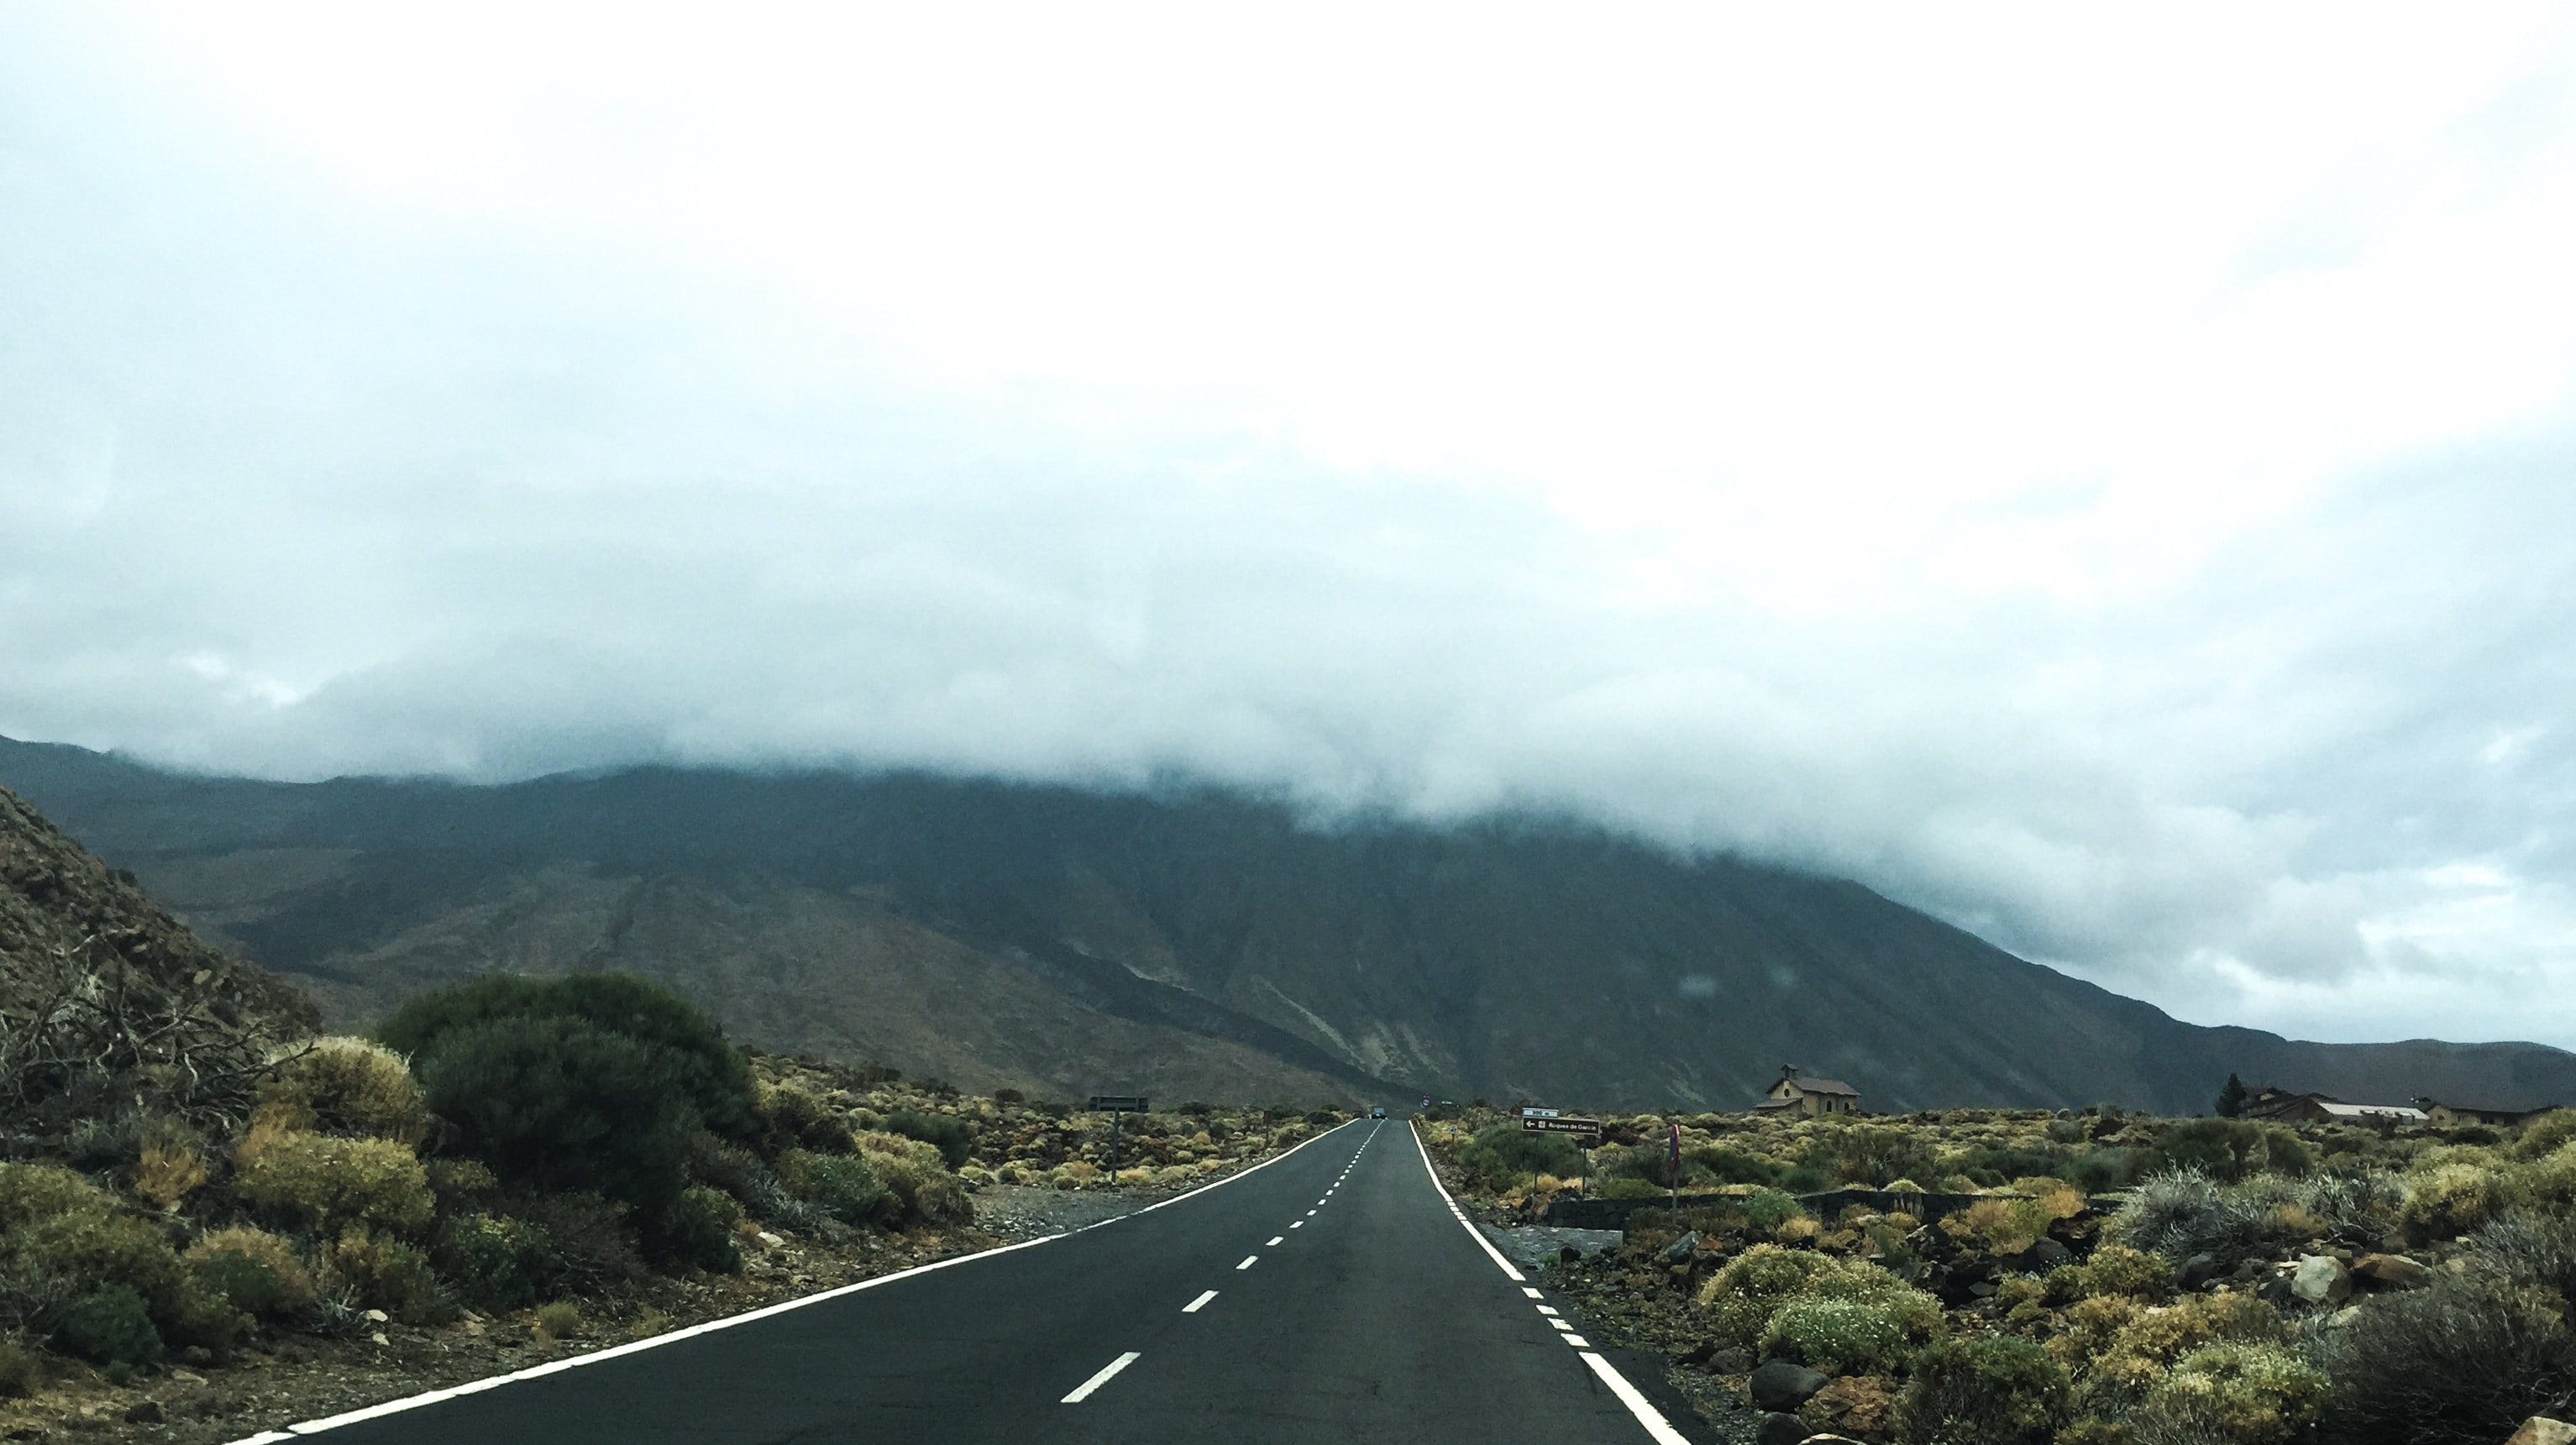 view of road and mountain covered by clouds